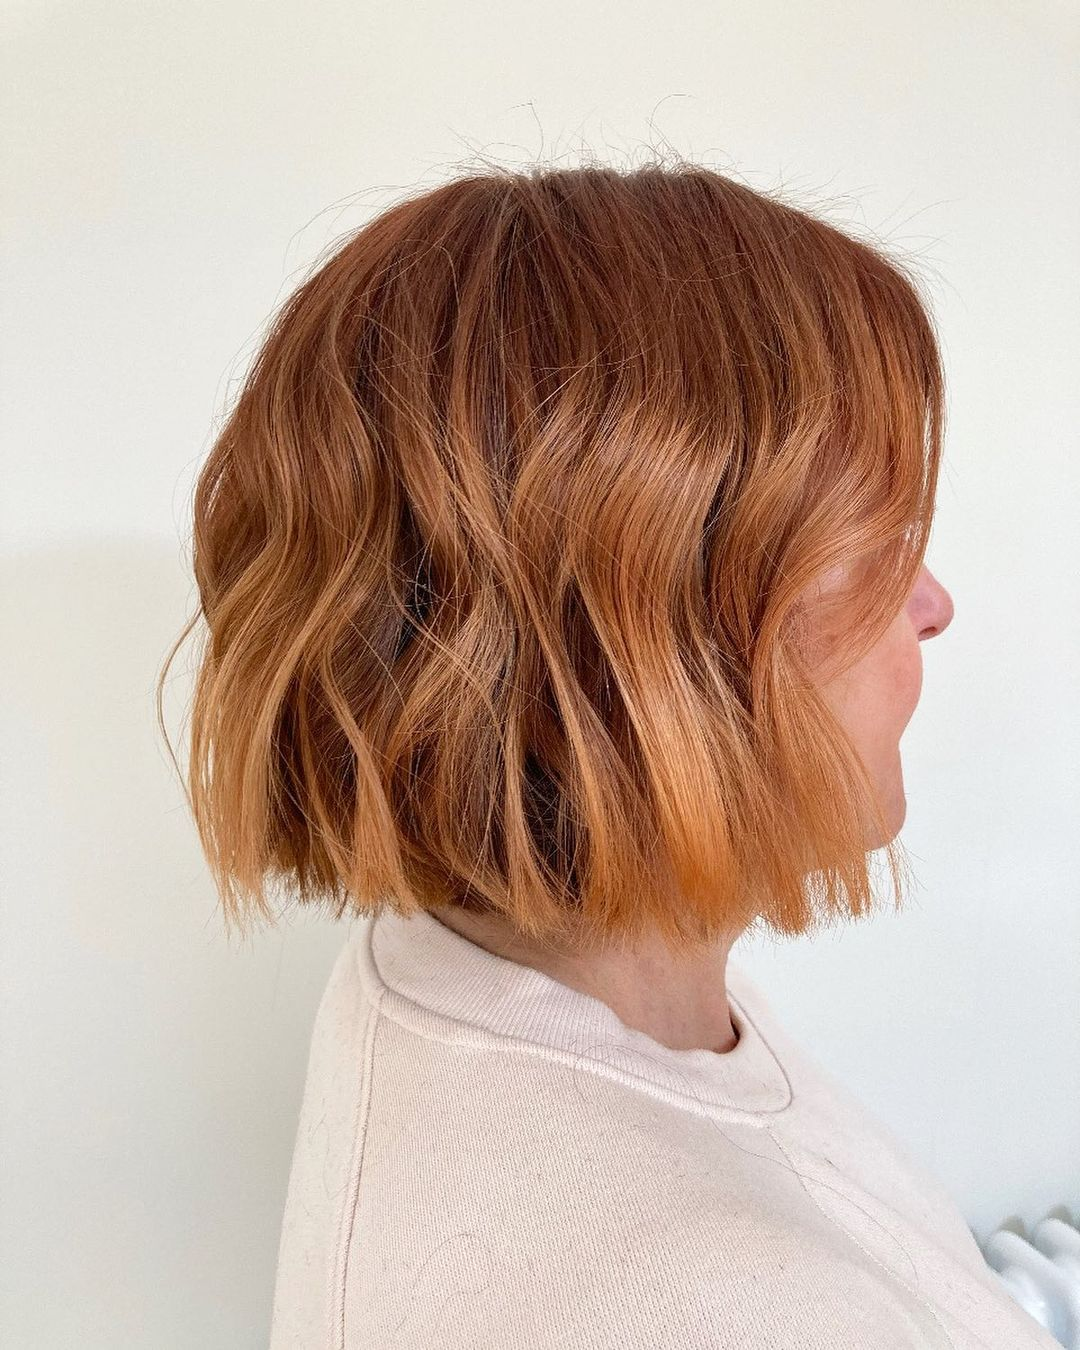 layered short hairstyles that can be preferred for date nights 16